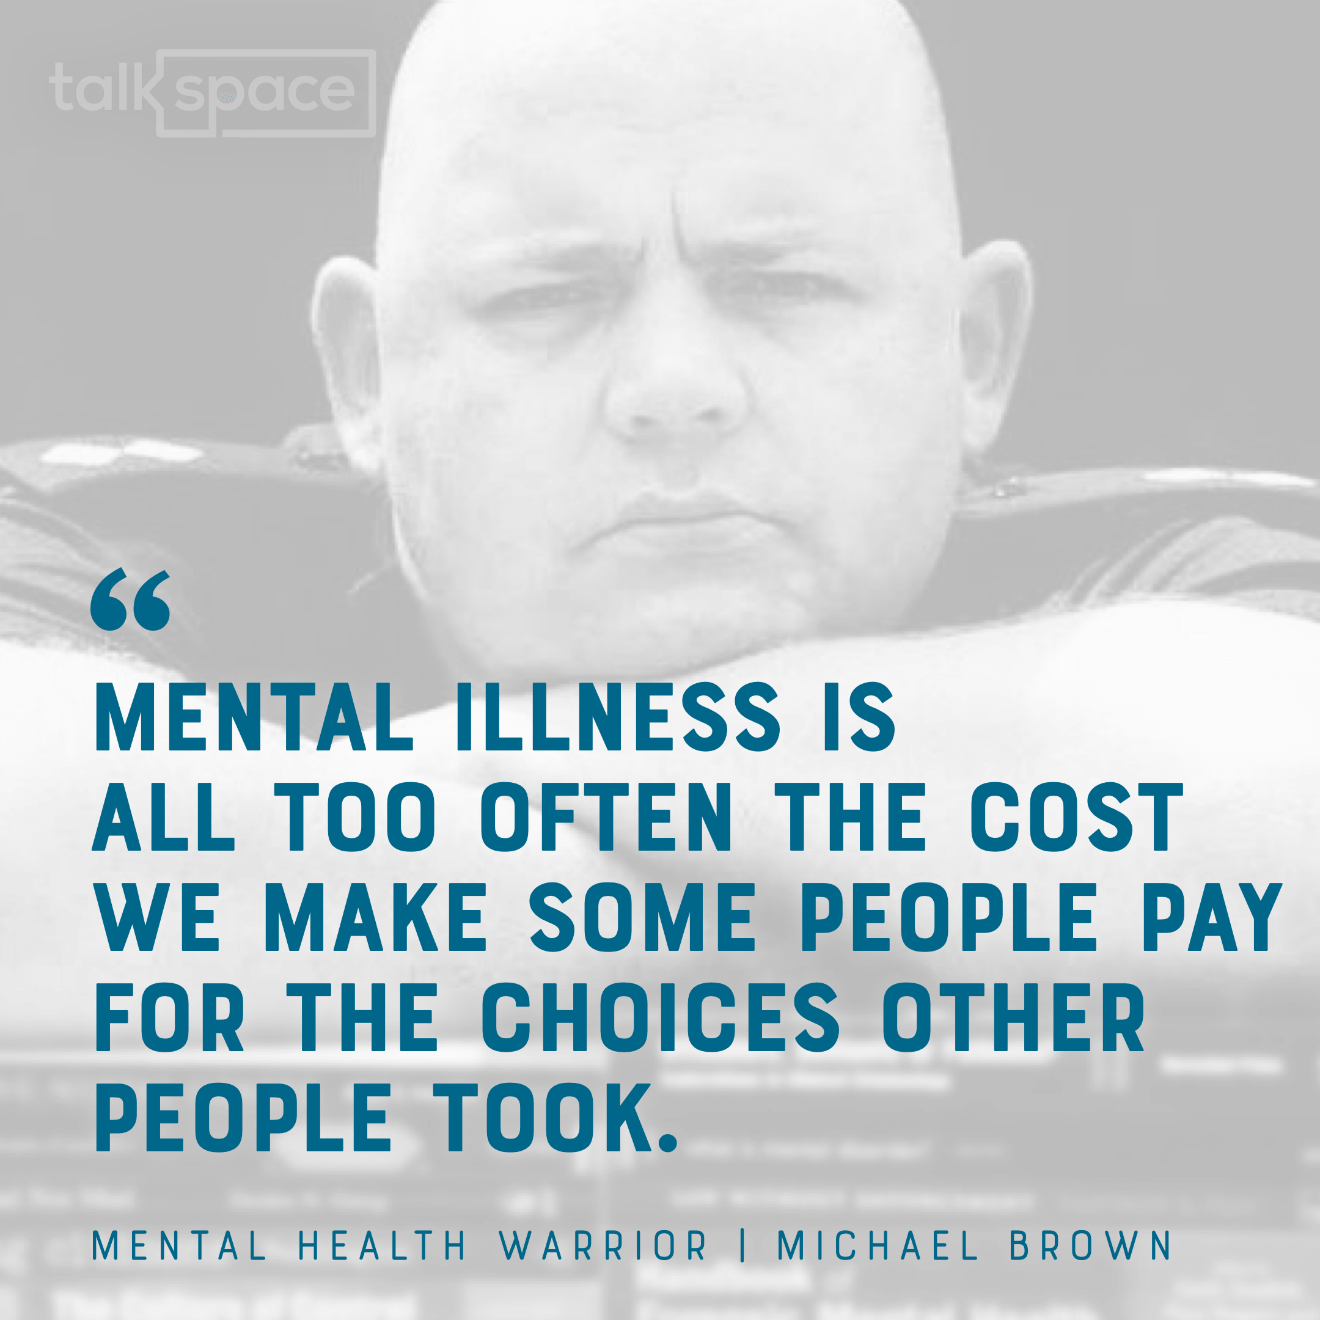 Michael Brown Talkspace headshot quote